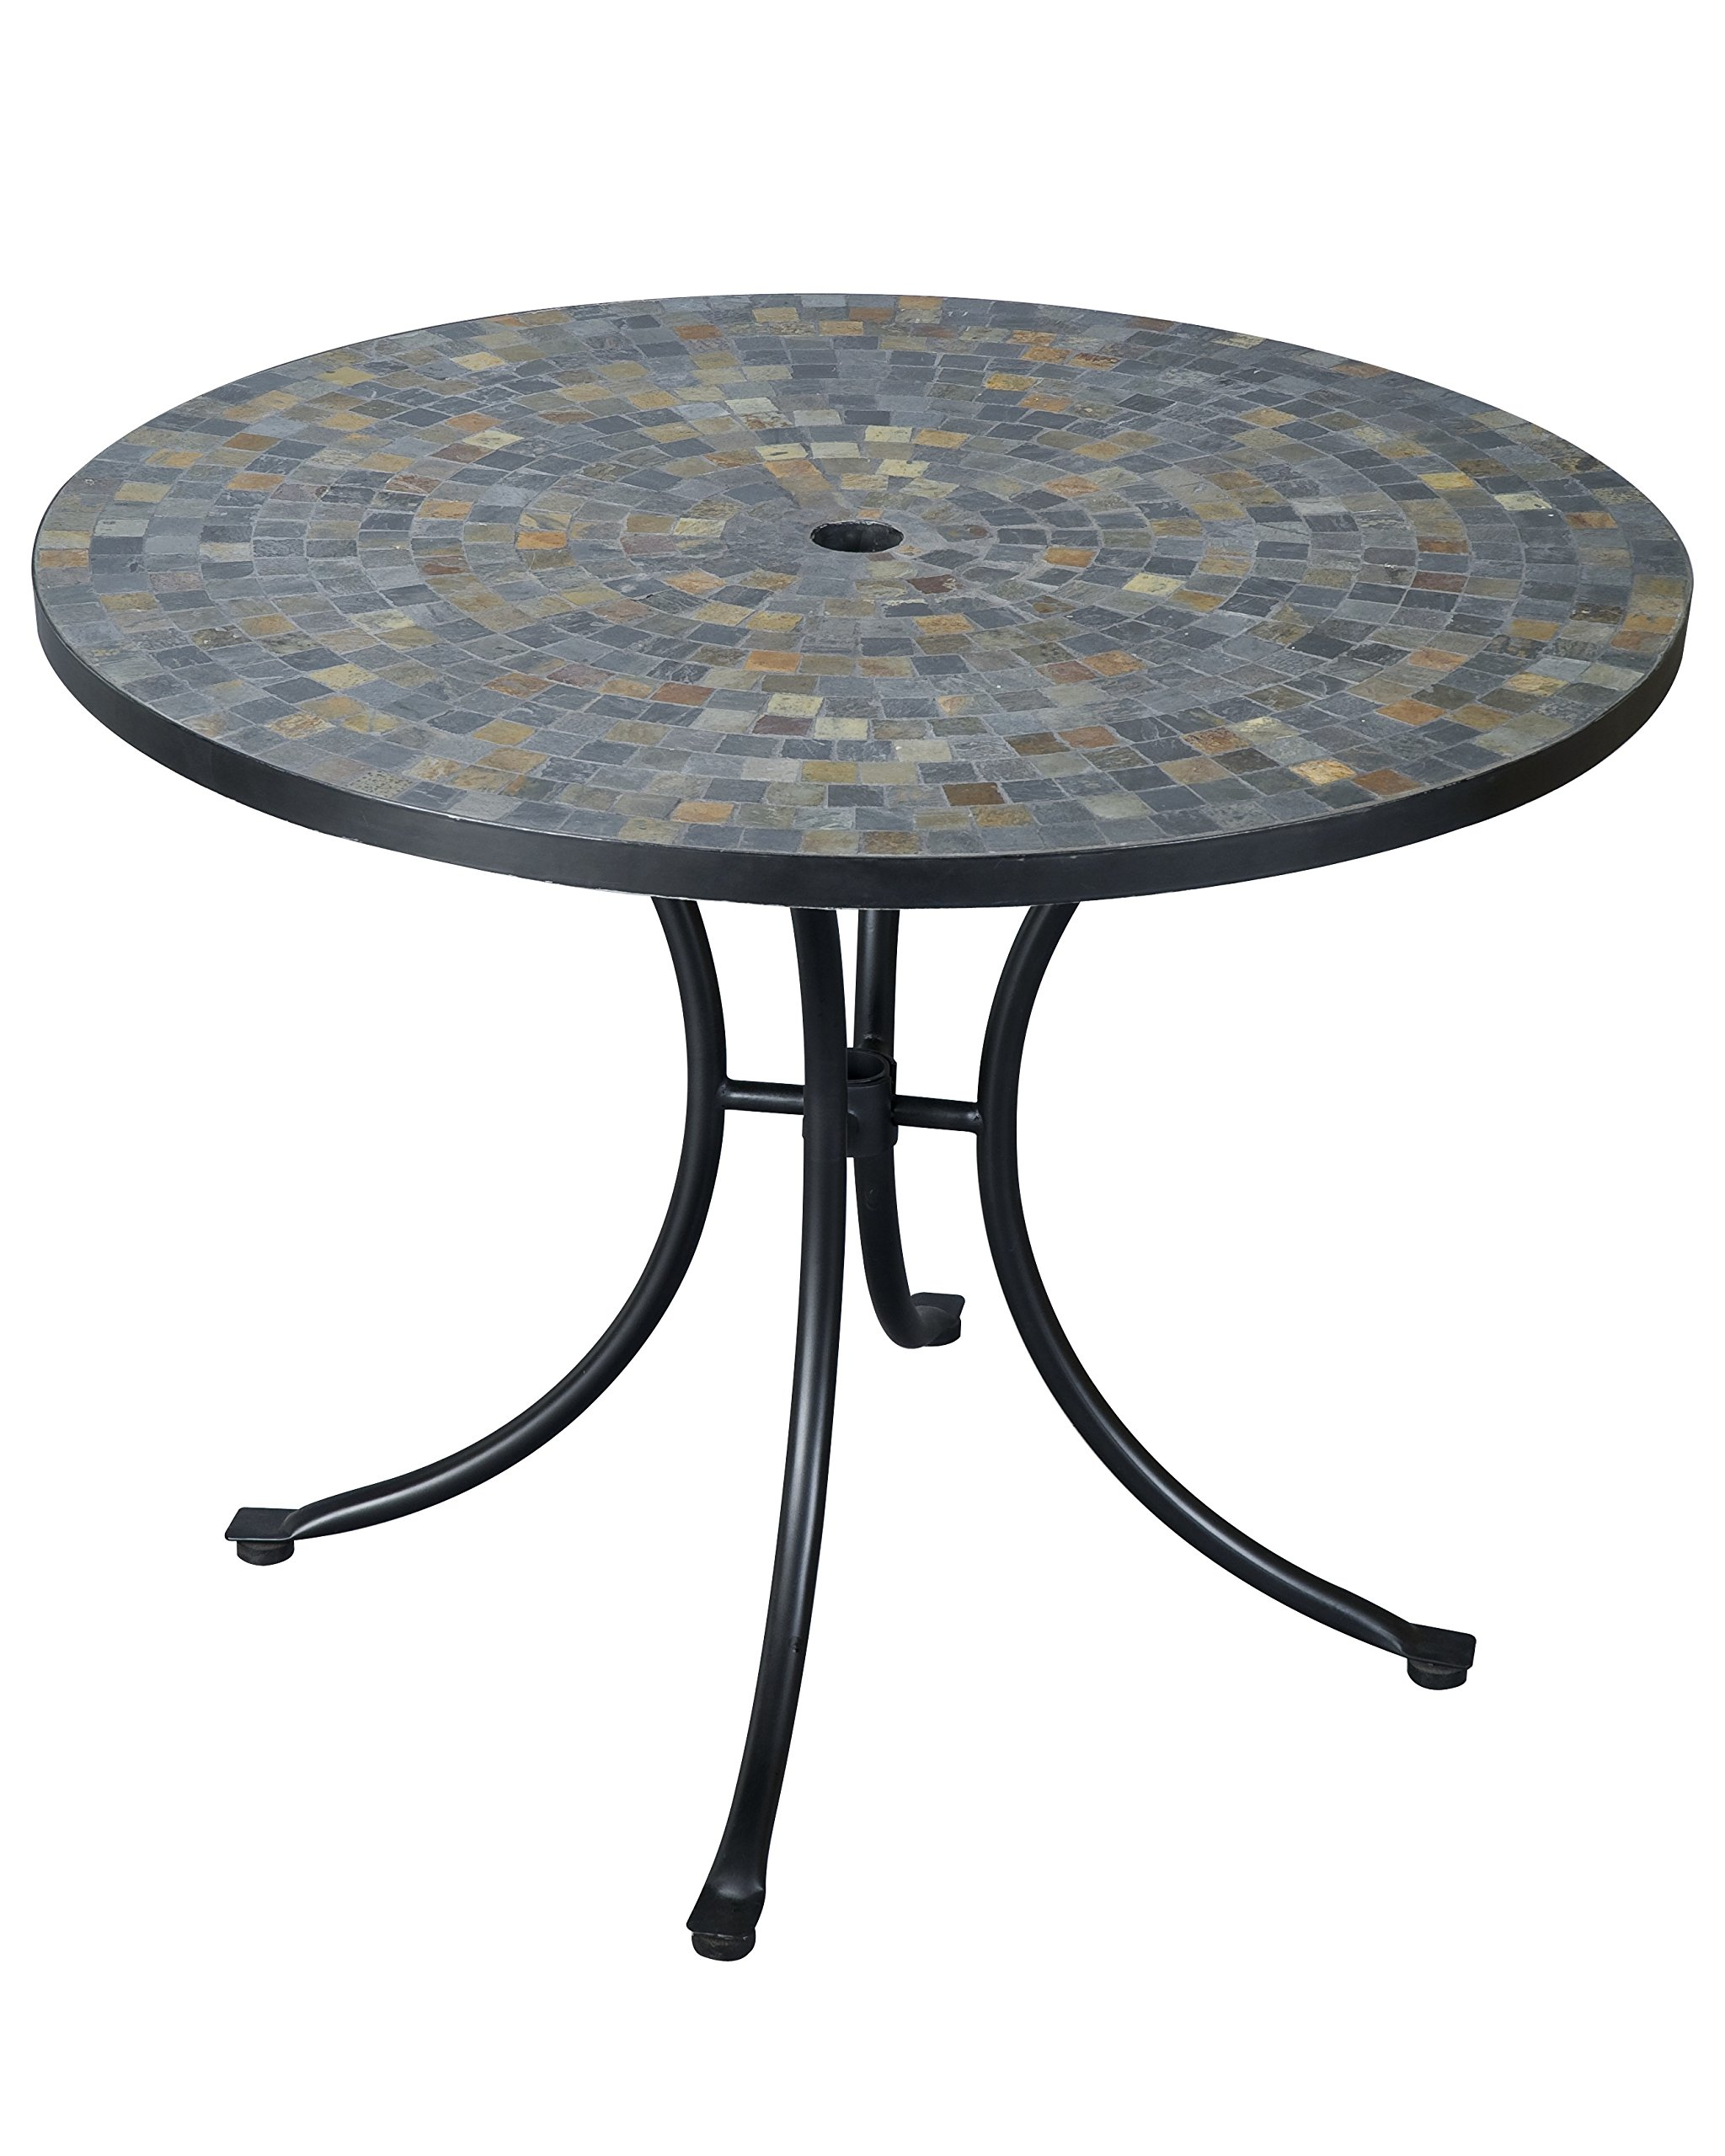 Stone Harbor Slate Tile Top Outdoor Dining Table by Home Styles